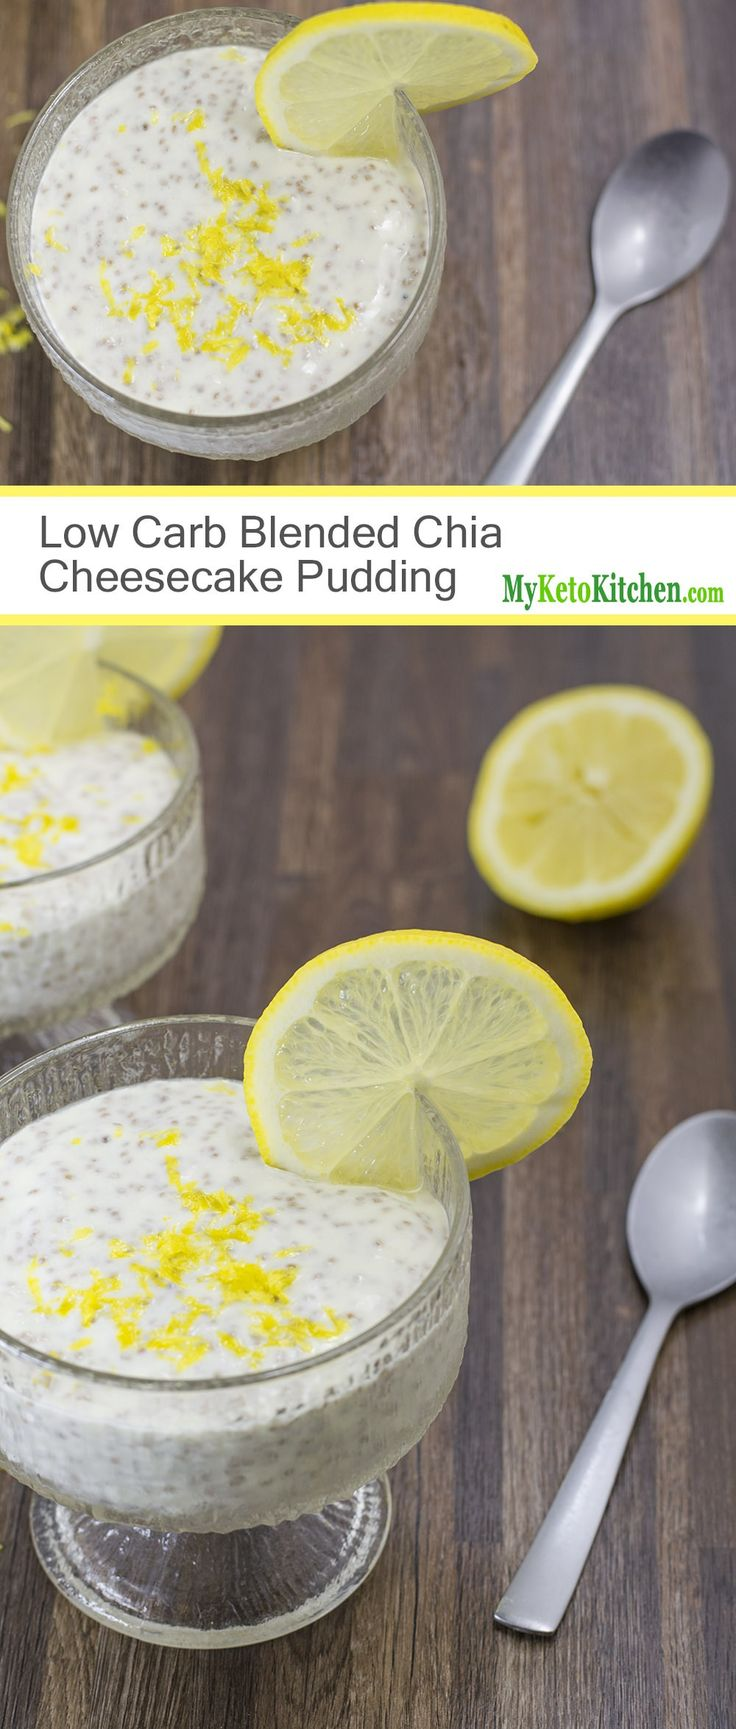 Low Carb Blended Chia Cheesecake Pudding [Gluten Free, Grain Free. Sugar Free Keto]